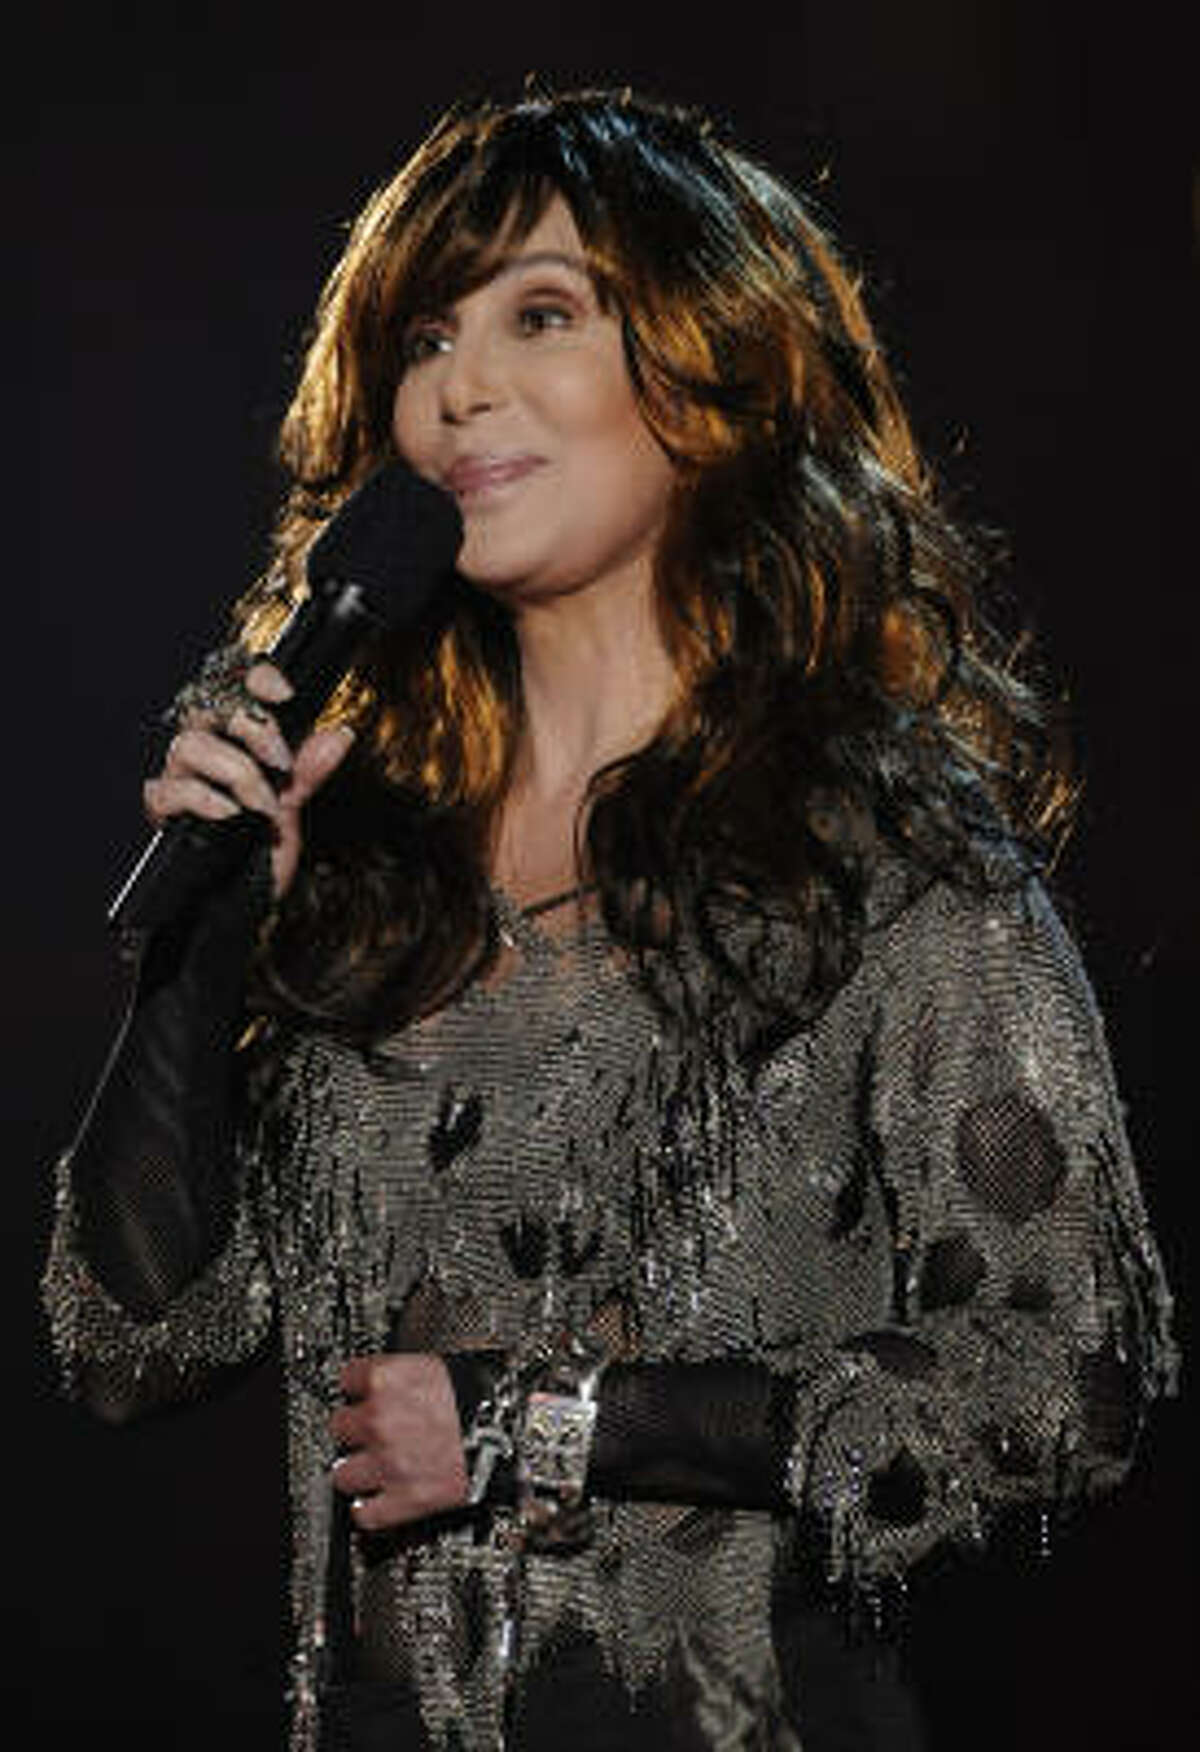 Cher, 64 She's coming out of